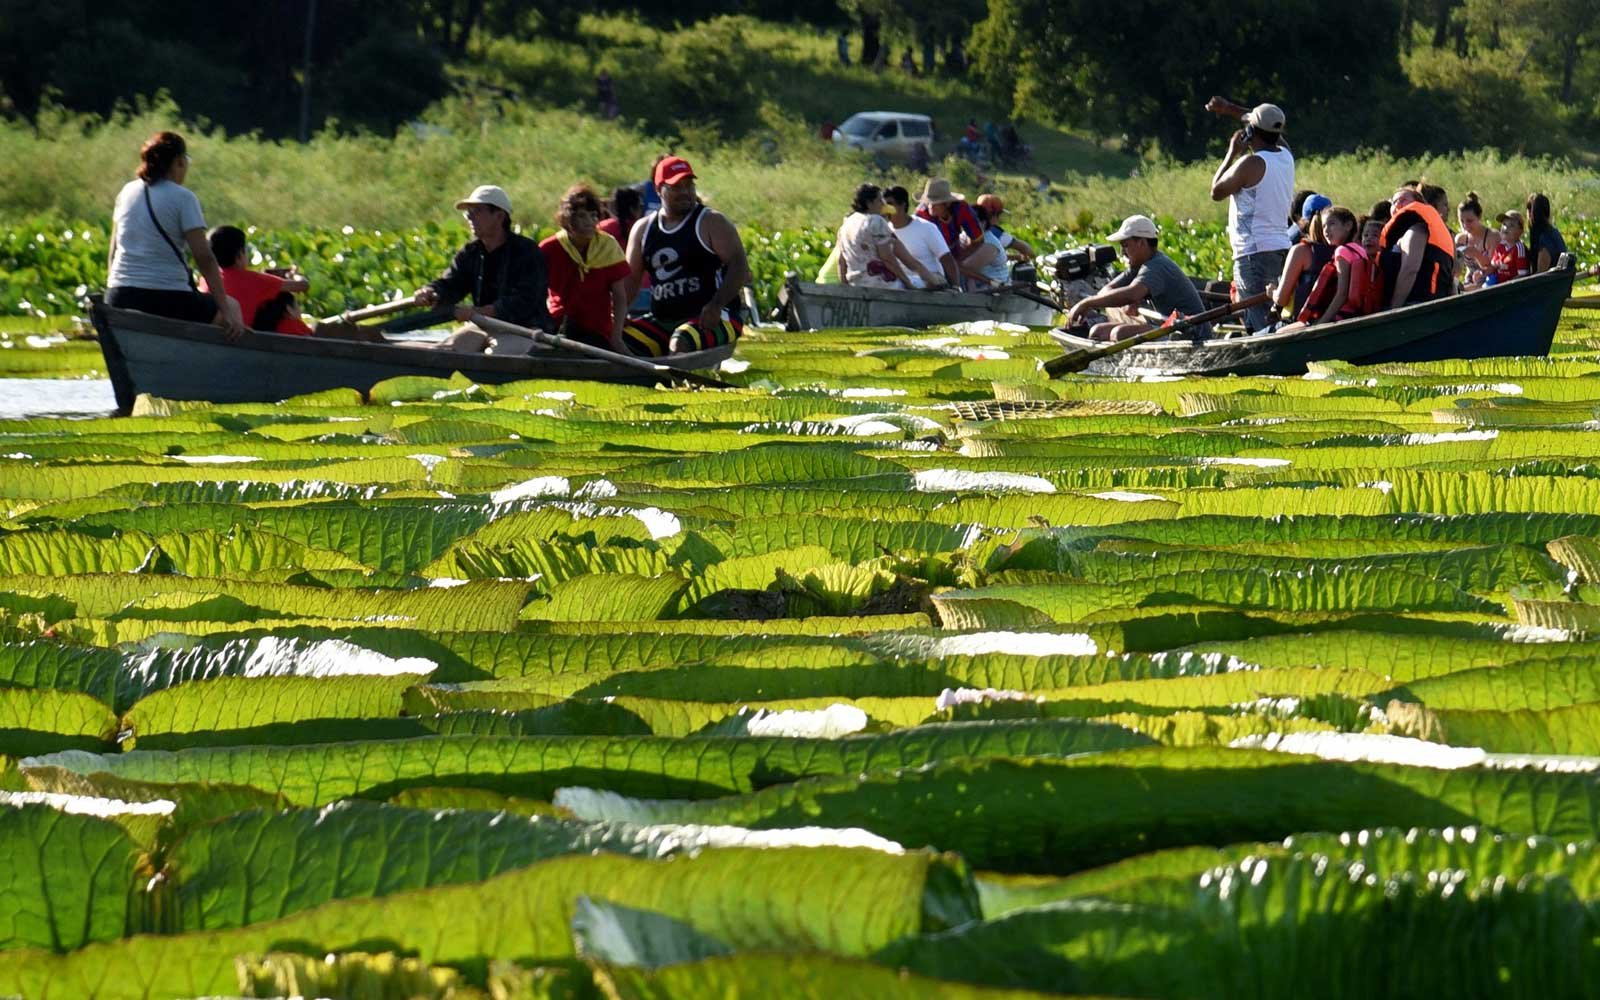 Paraguays Giant Lily Pads Magically Reappeared After Everyone